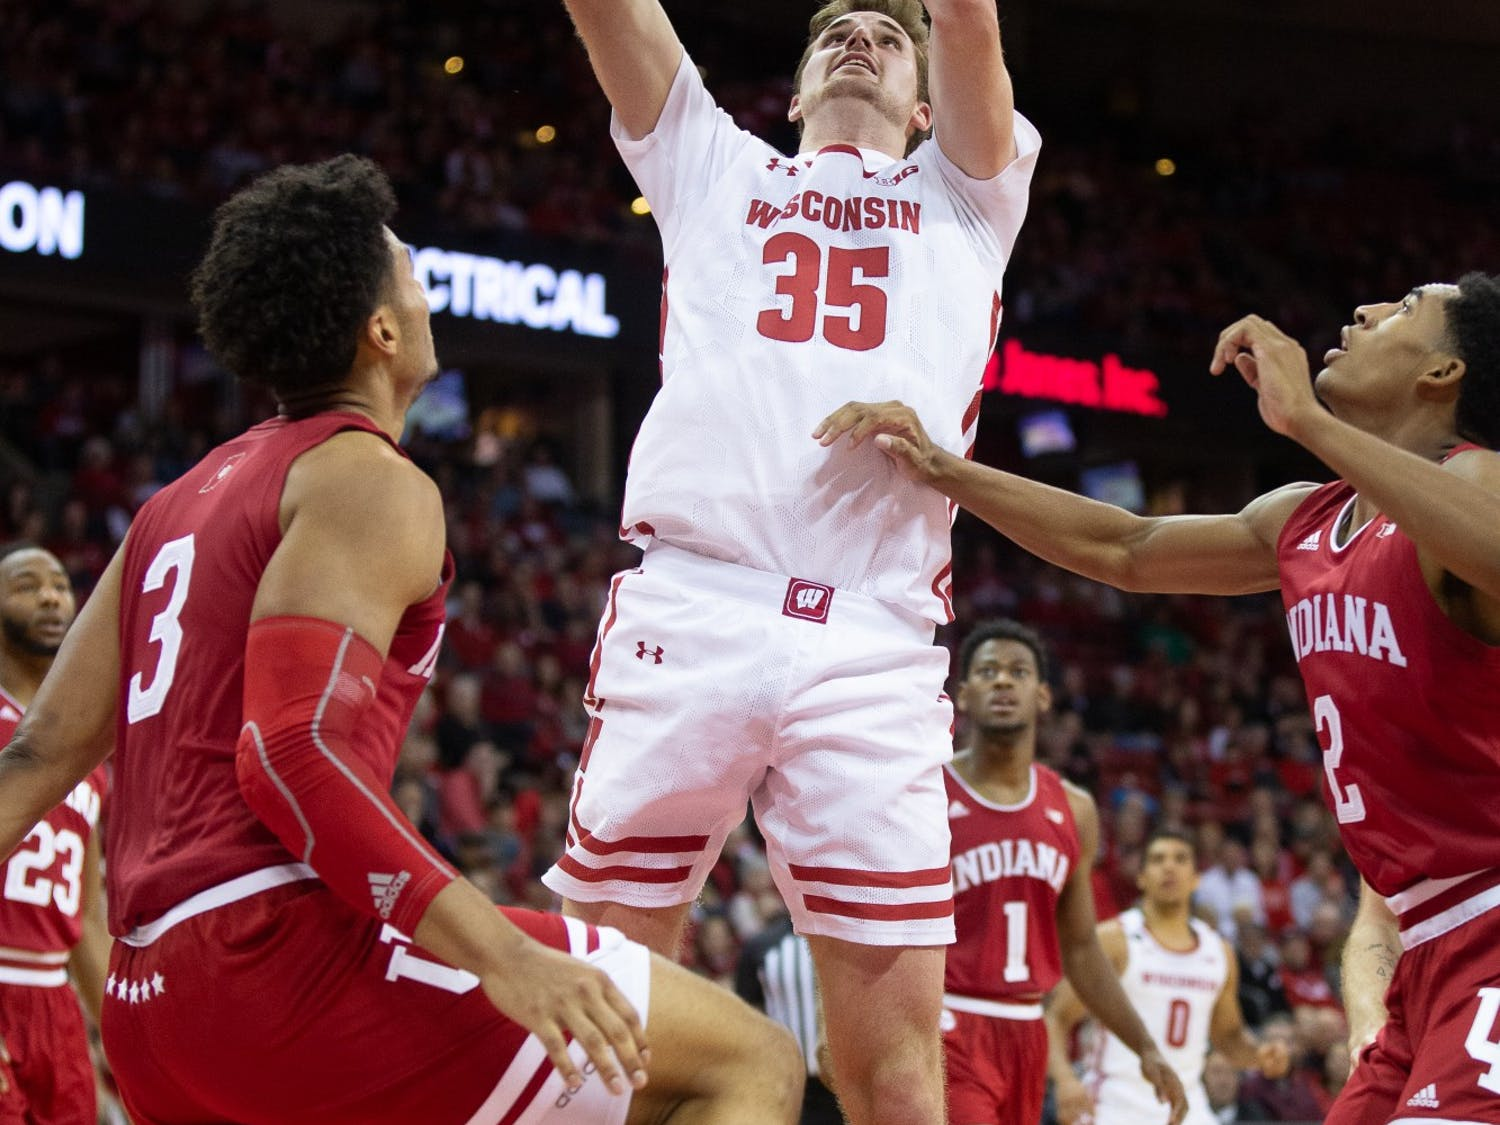 Nate Reuvers' late offensive rebound and basket helped clinch UW's 60-56 win over Indiana.